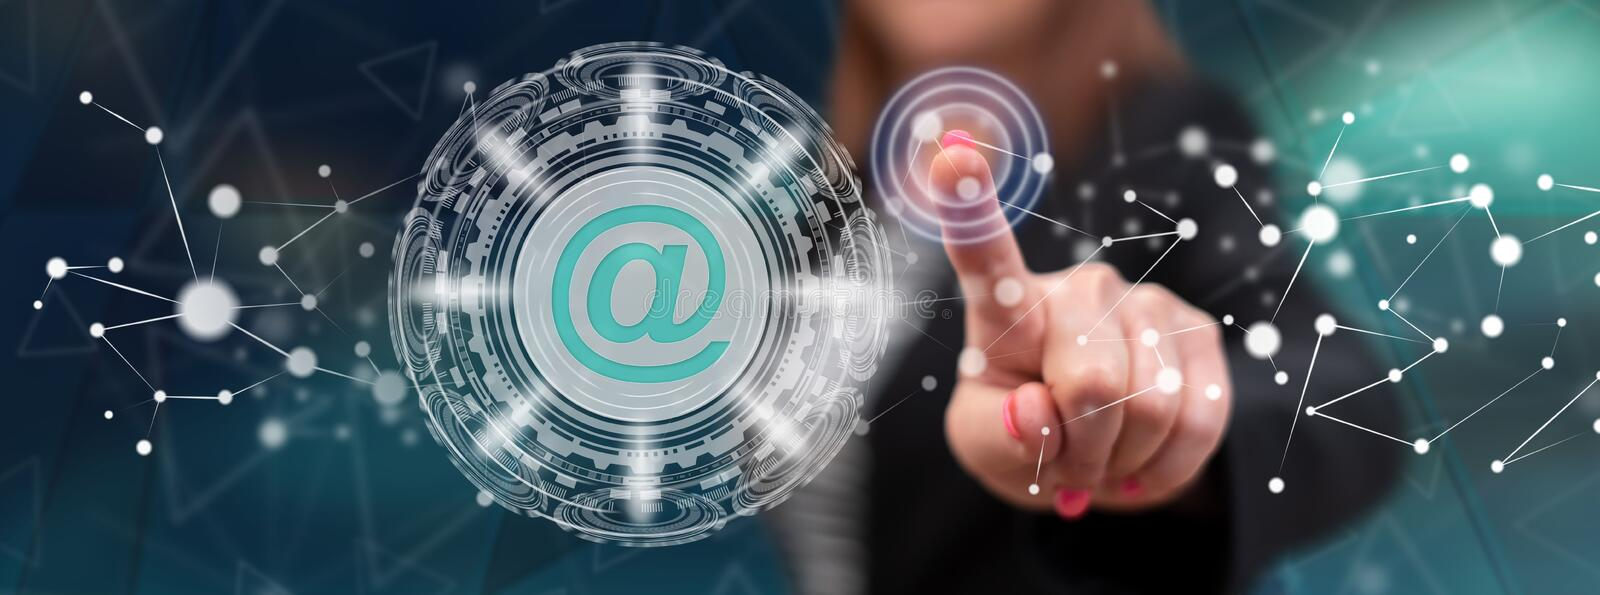 Woman touching an email concept royalty free stock photos